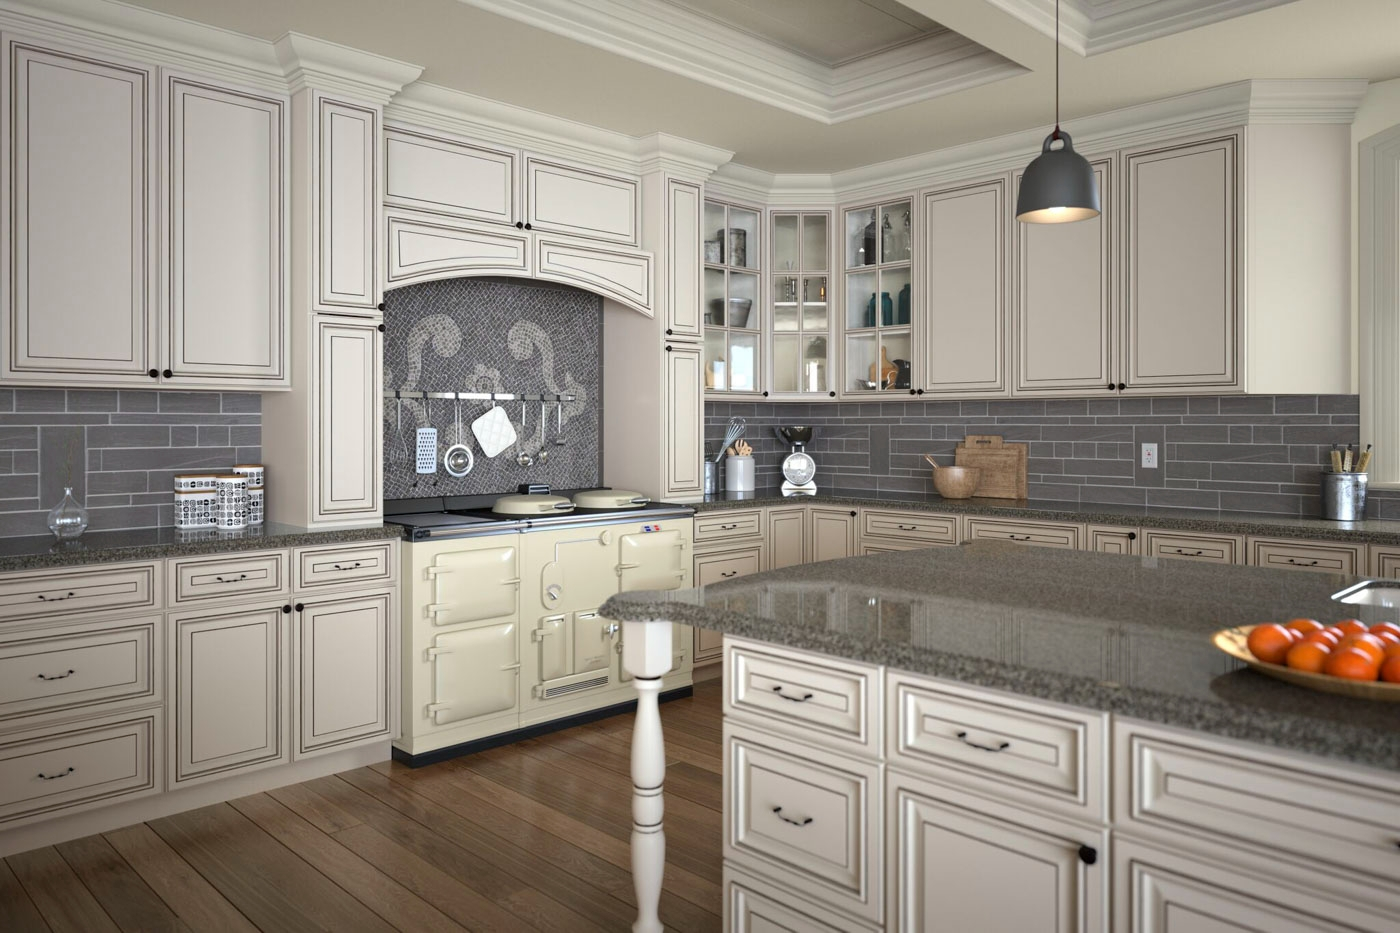 Kitchen Cabinets for Sale (@kitchen09) Cover Image